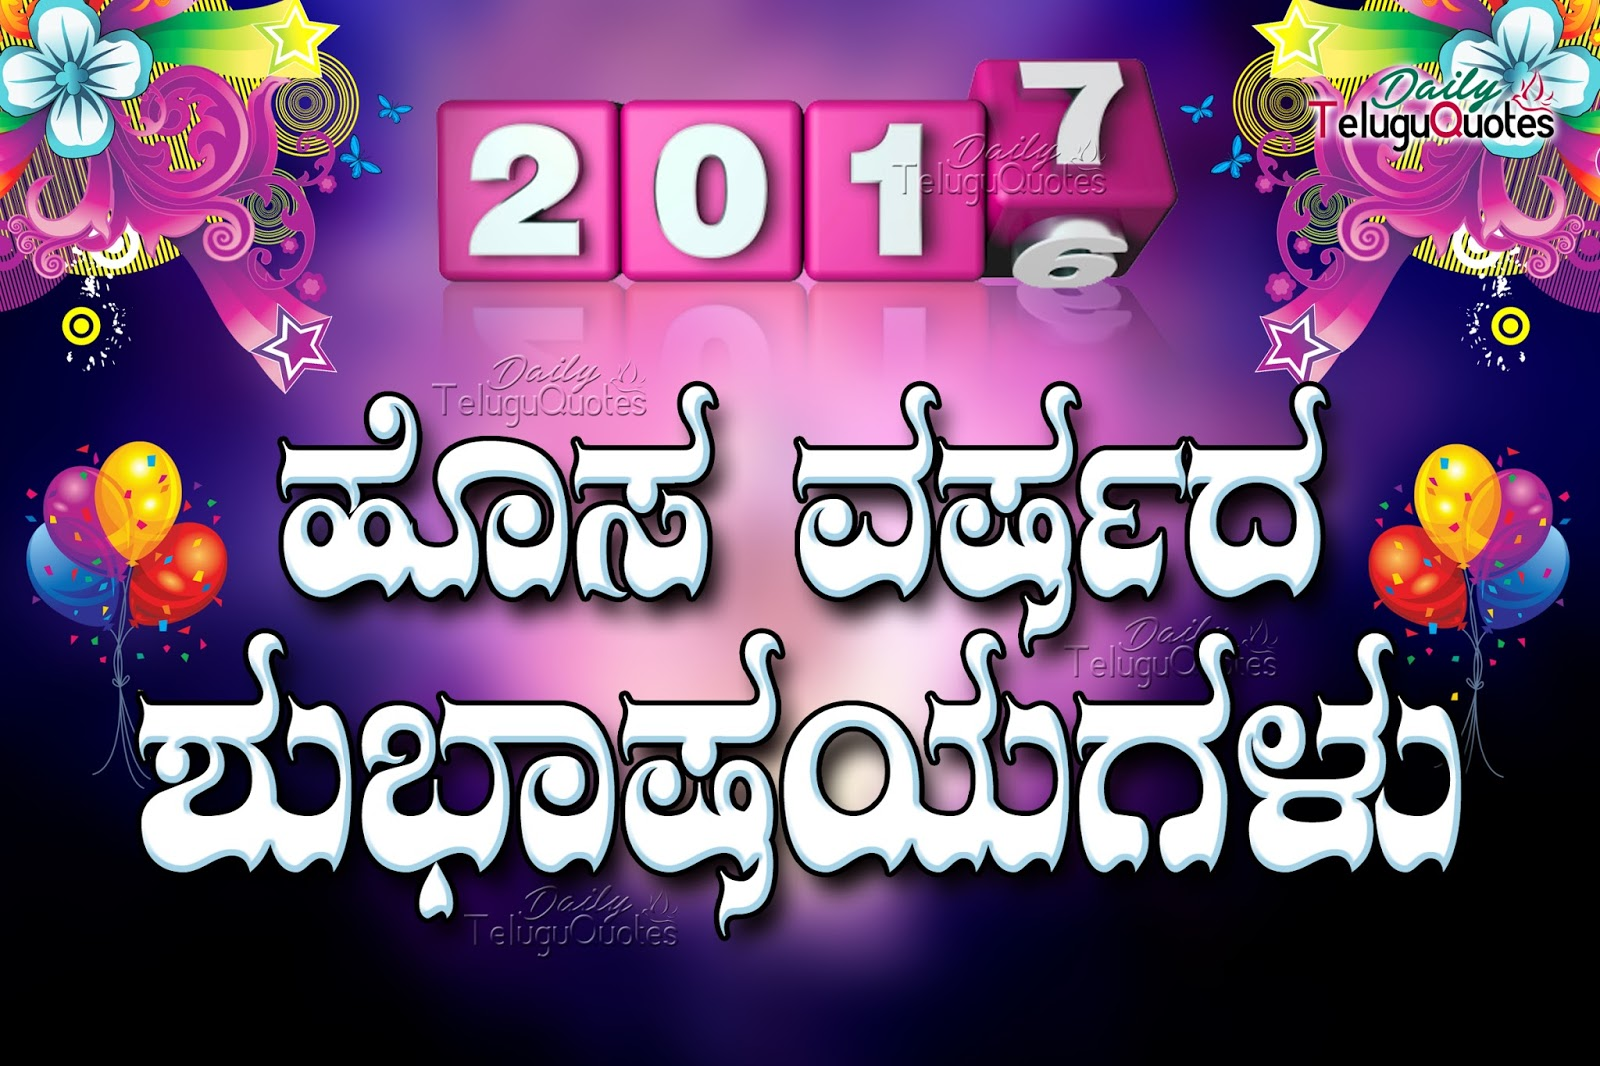 New year meaning kannada quotes story images wishes new year meaning kannada quotes story images wishes m4hsunfo